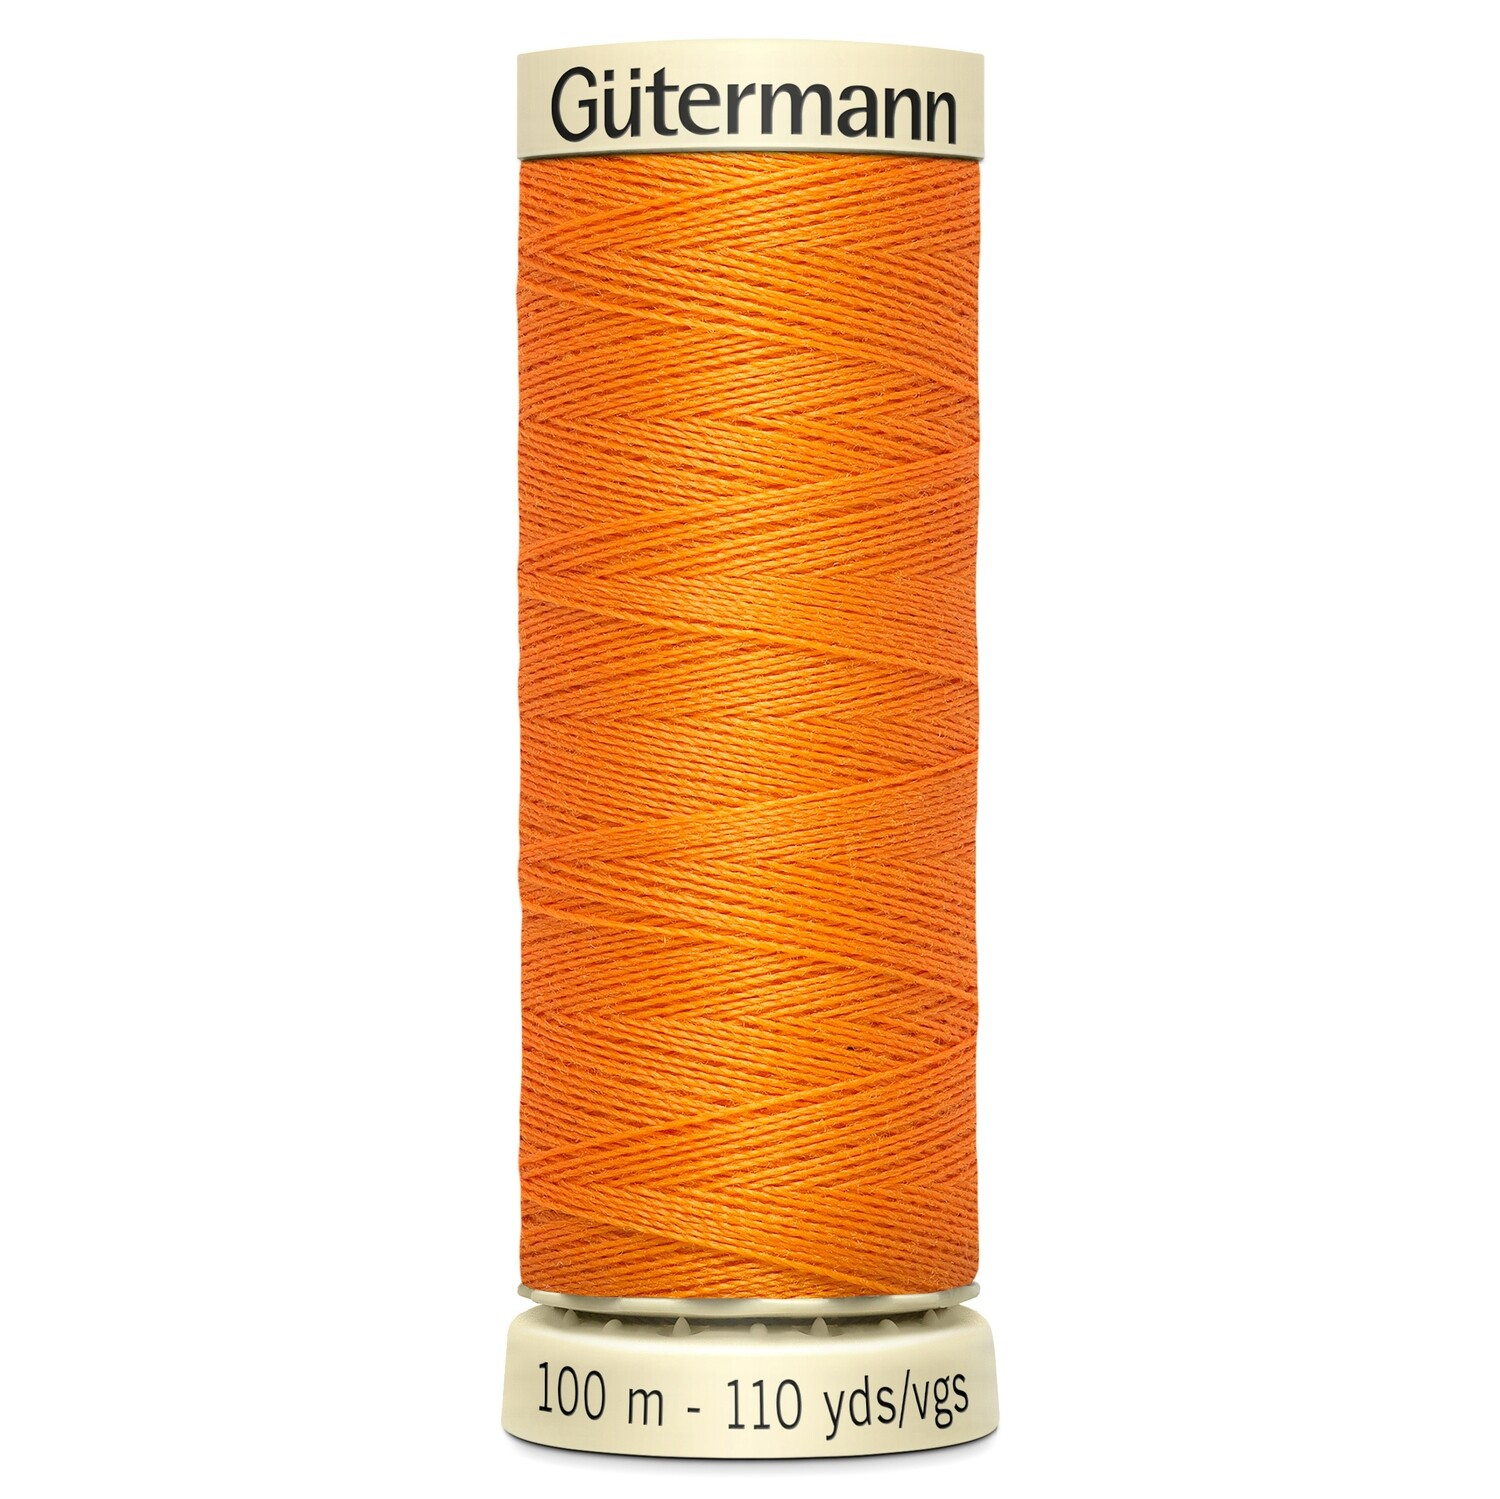 Gutermann Sew-All thread 350